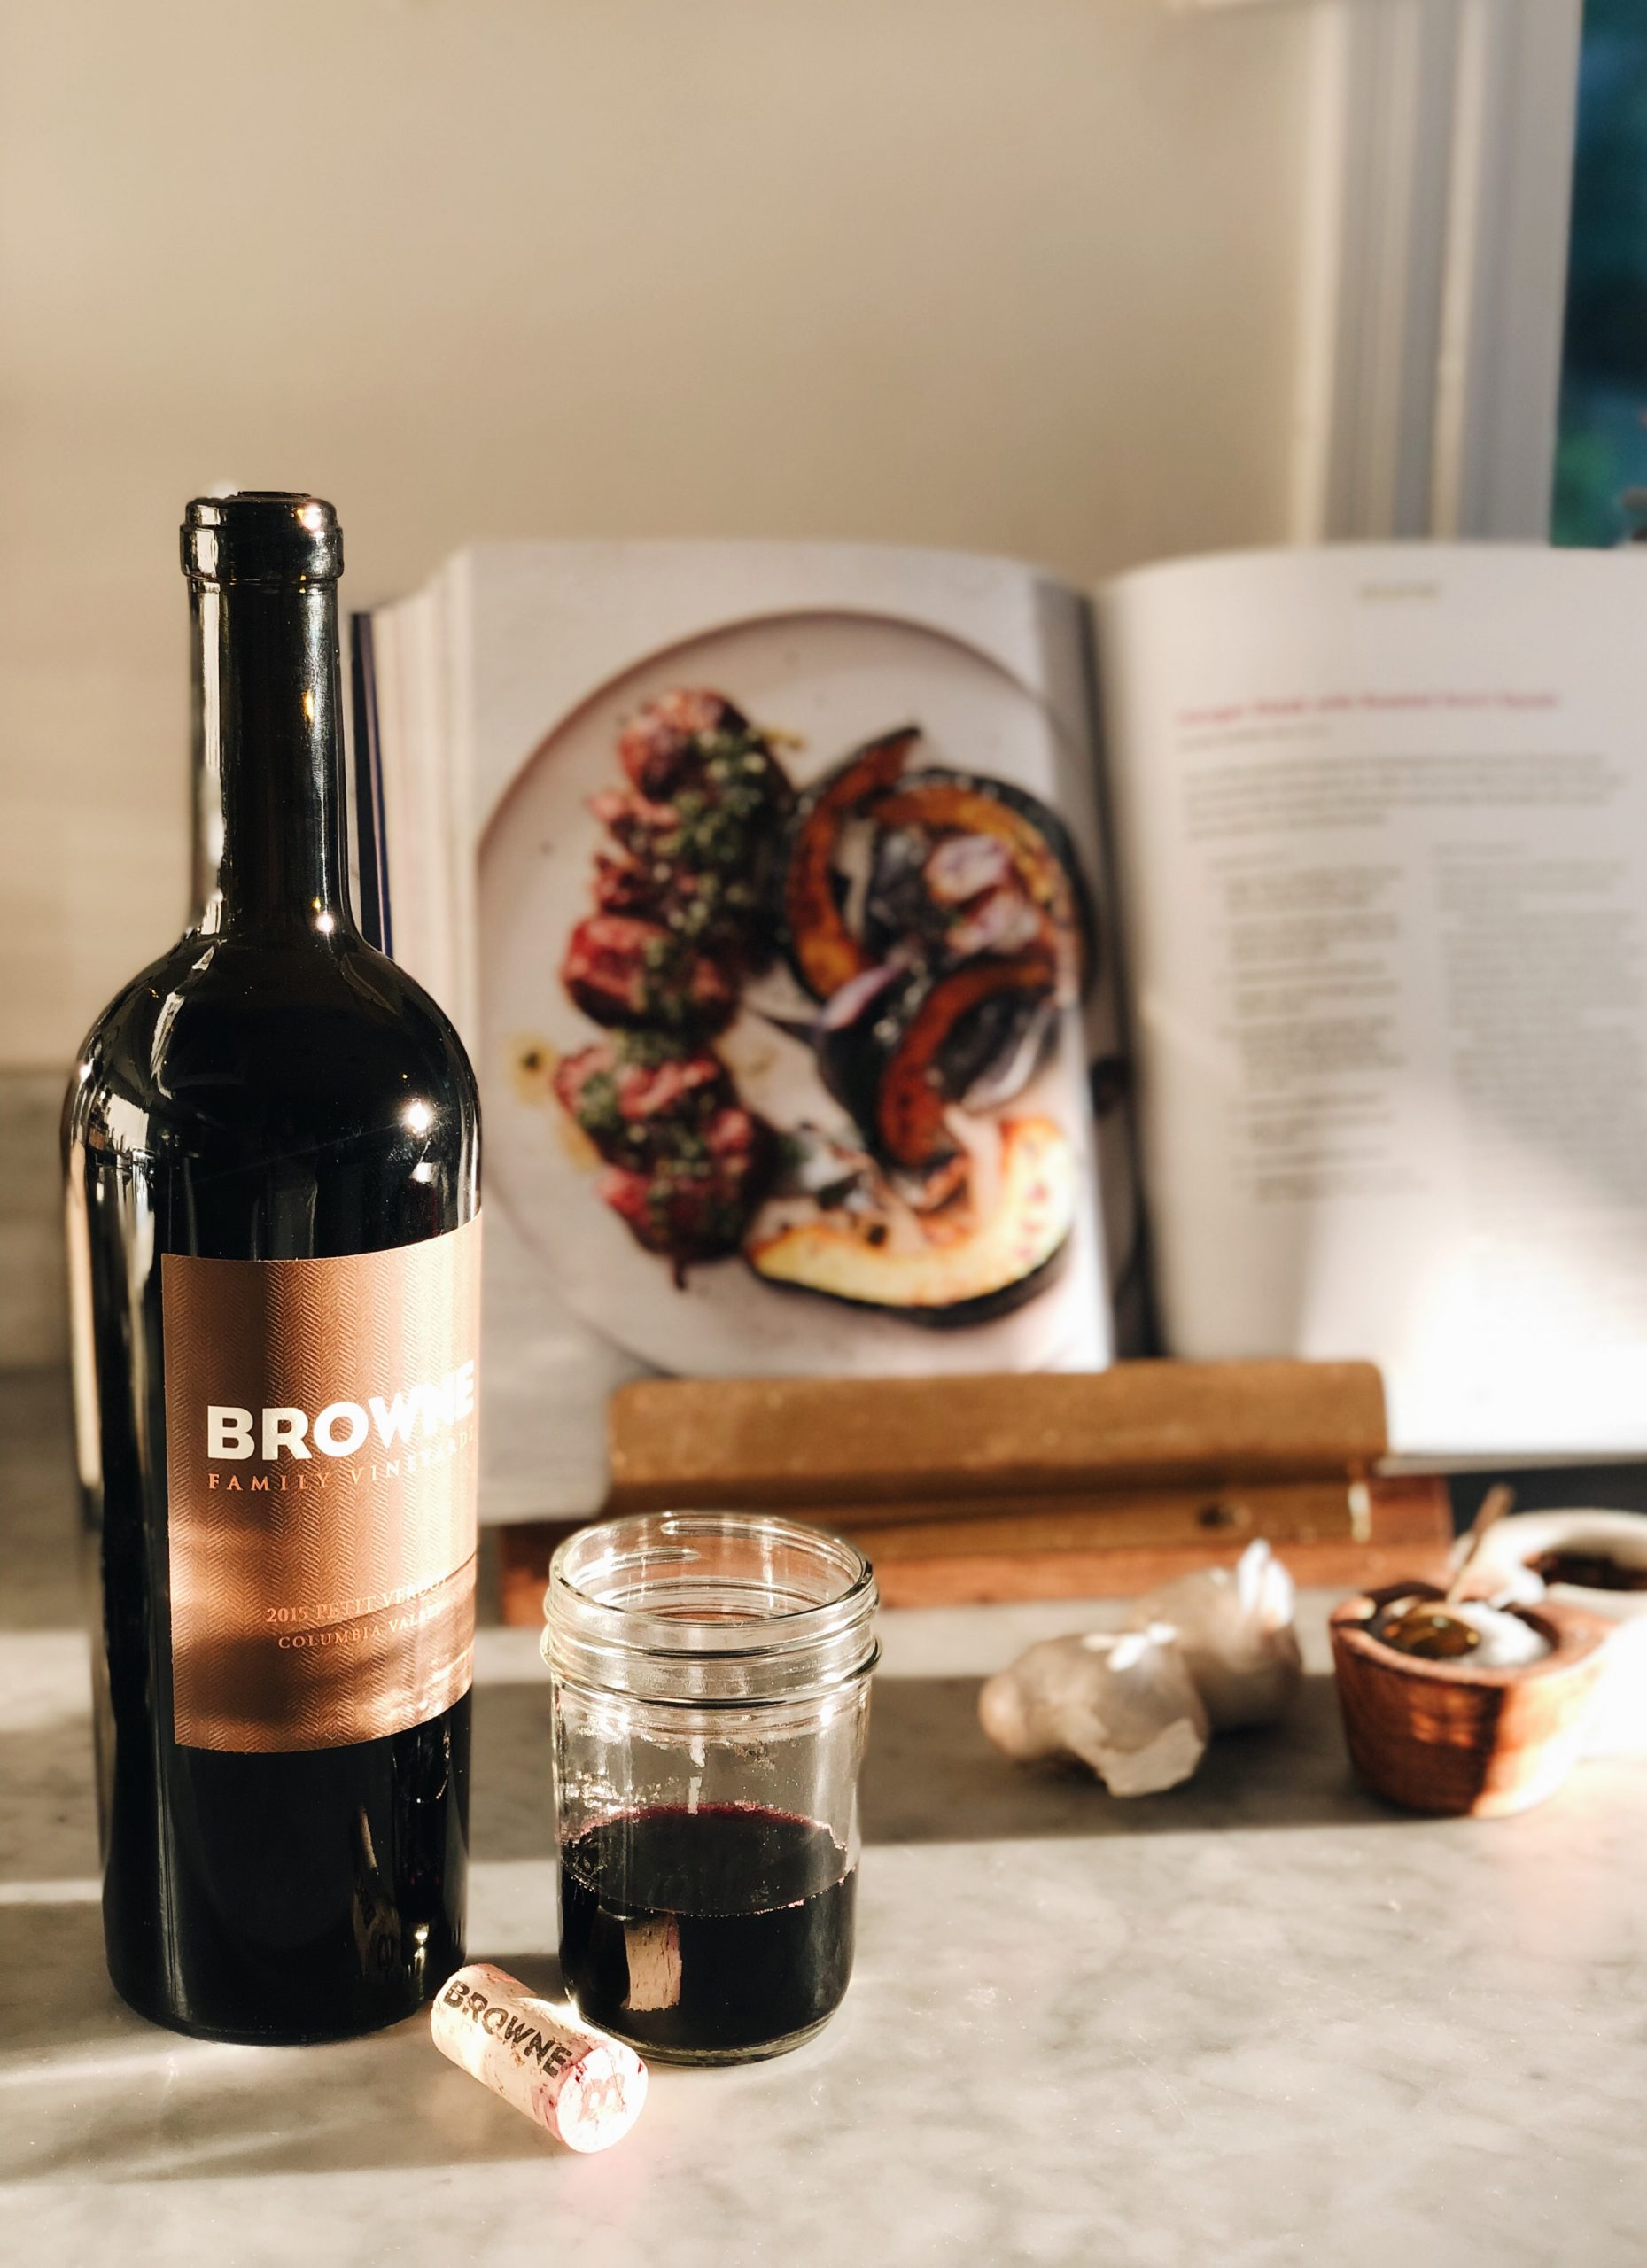 Browne Pinot Noir and open cookbook on counter